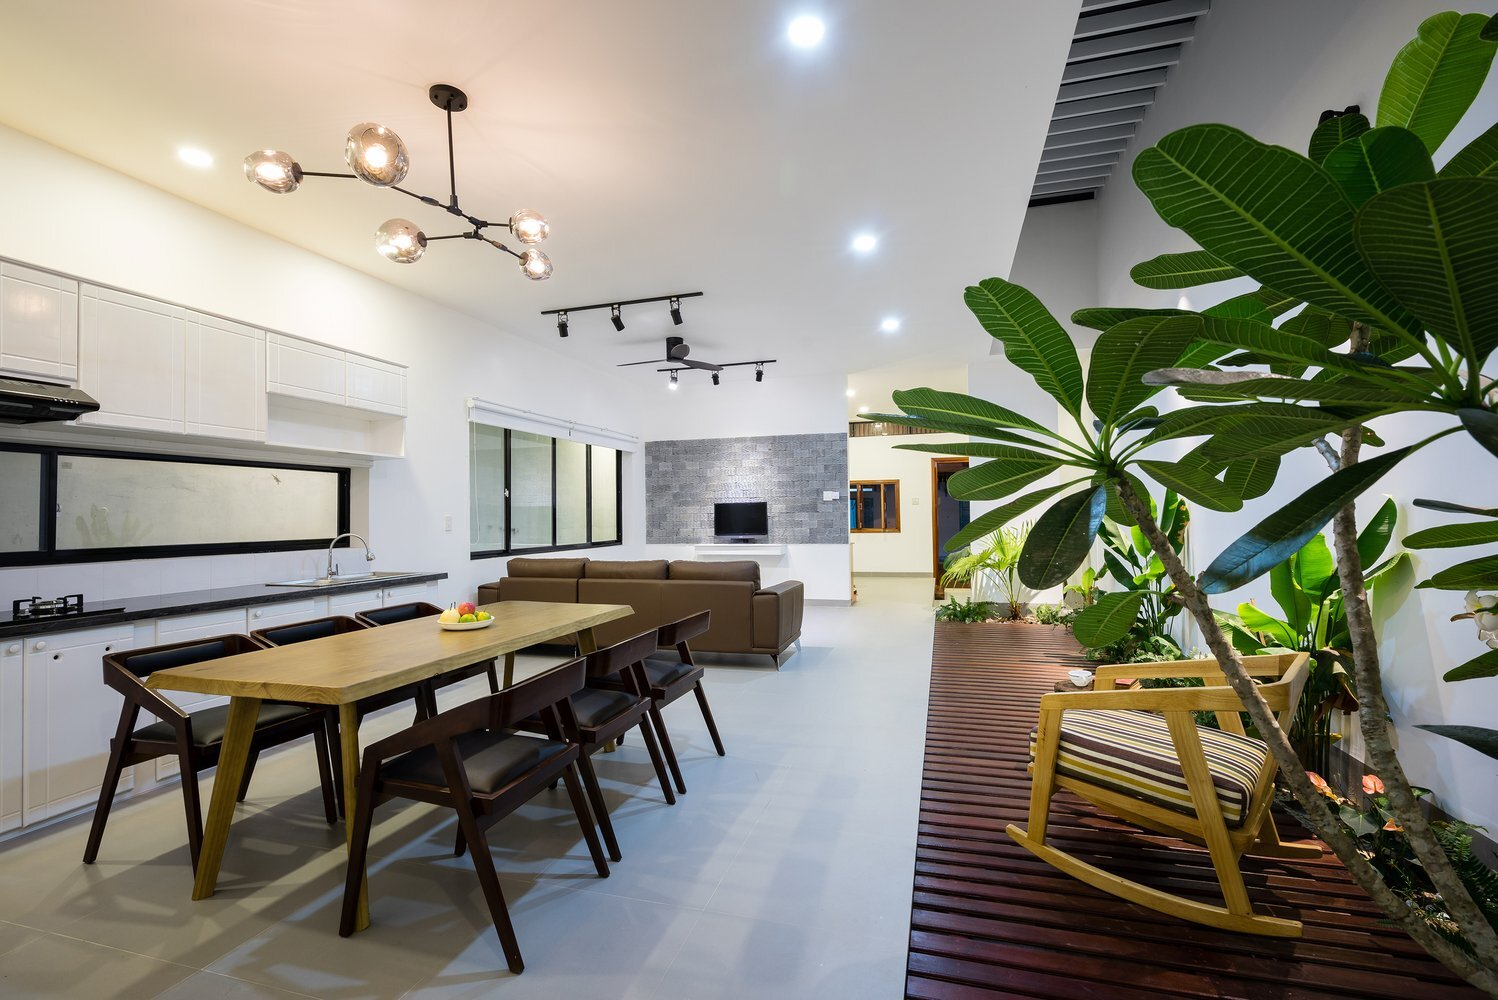 TP House - Sawadeesign Studio - Vietnam - Living Area - Humble Homes